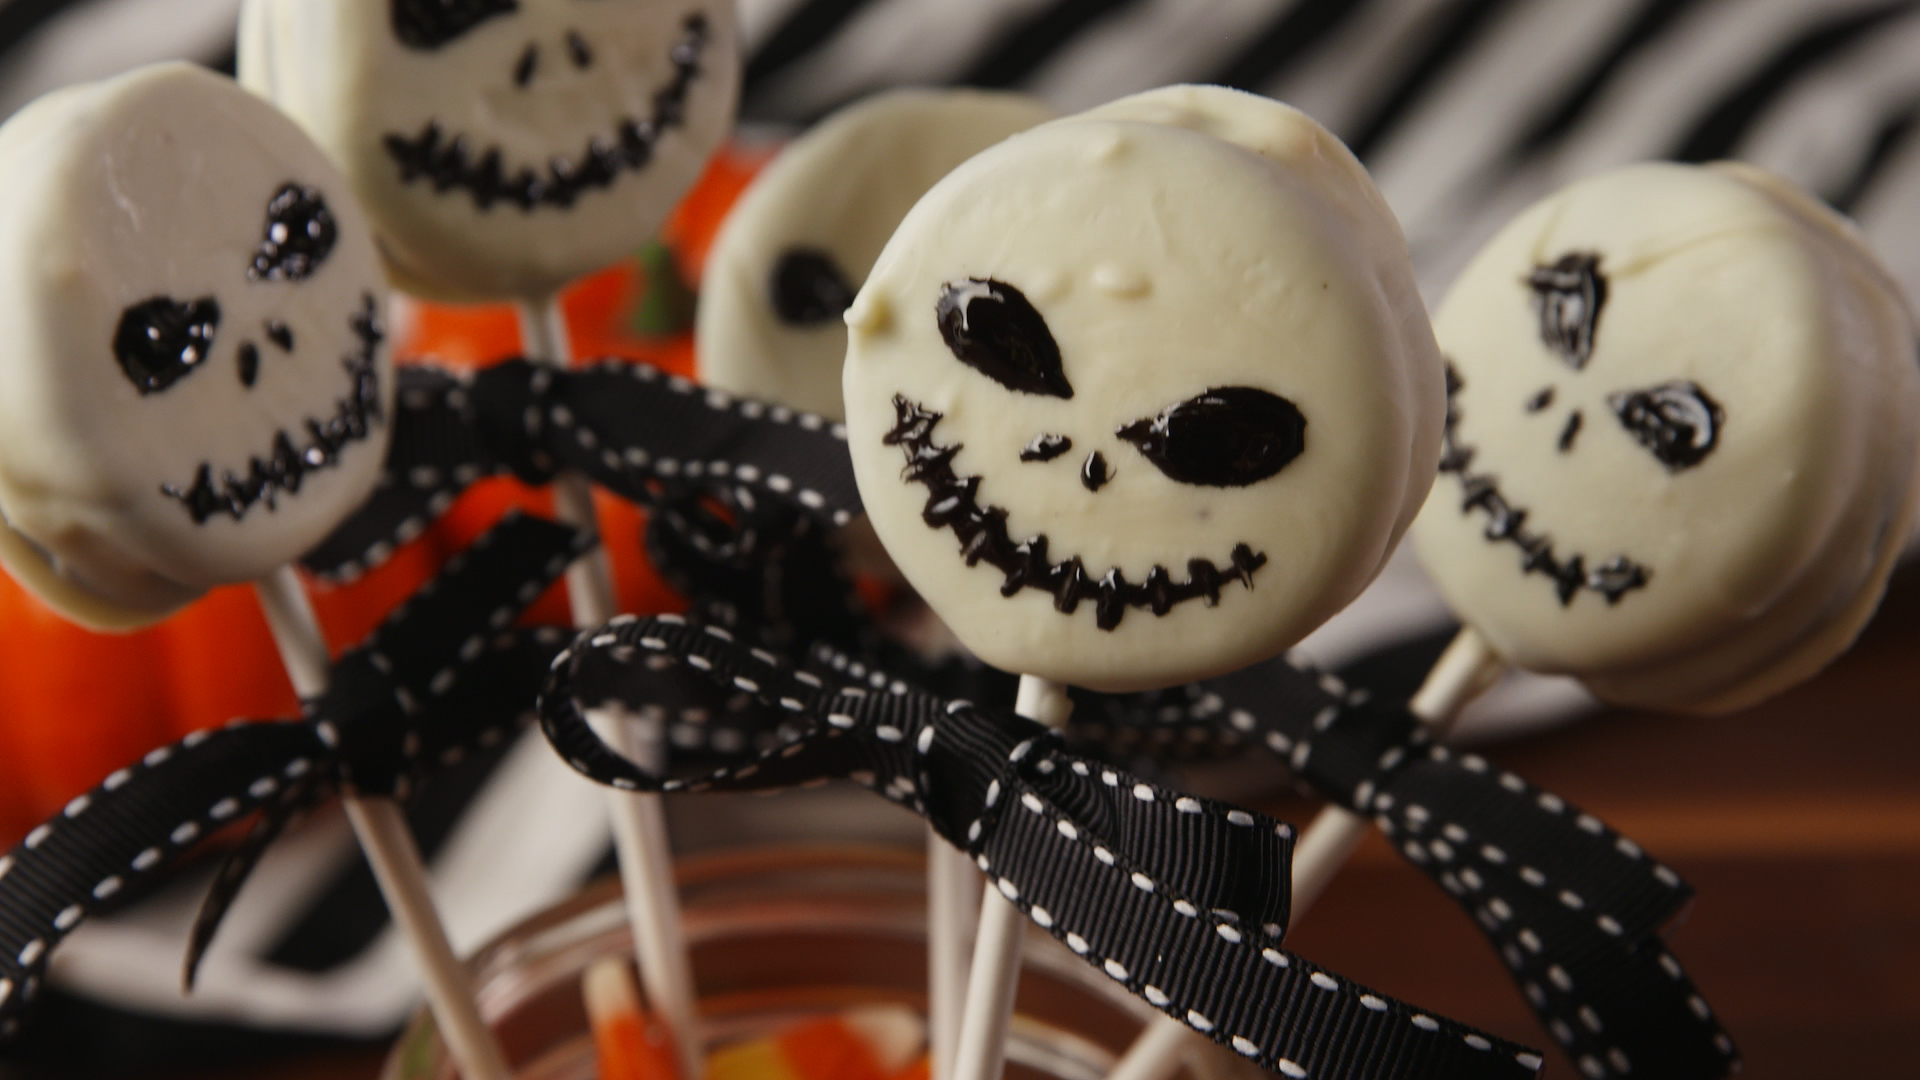 This Oreo Monster Decorating Cookie Kit Will Get You Into The Halloween Spirit